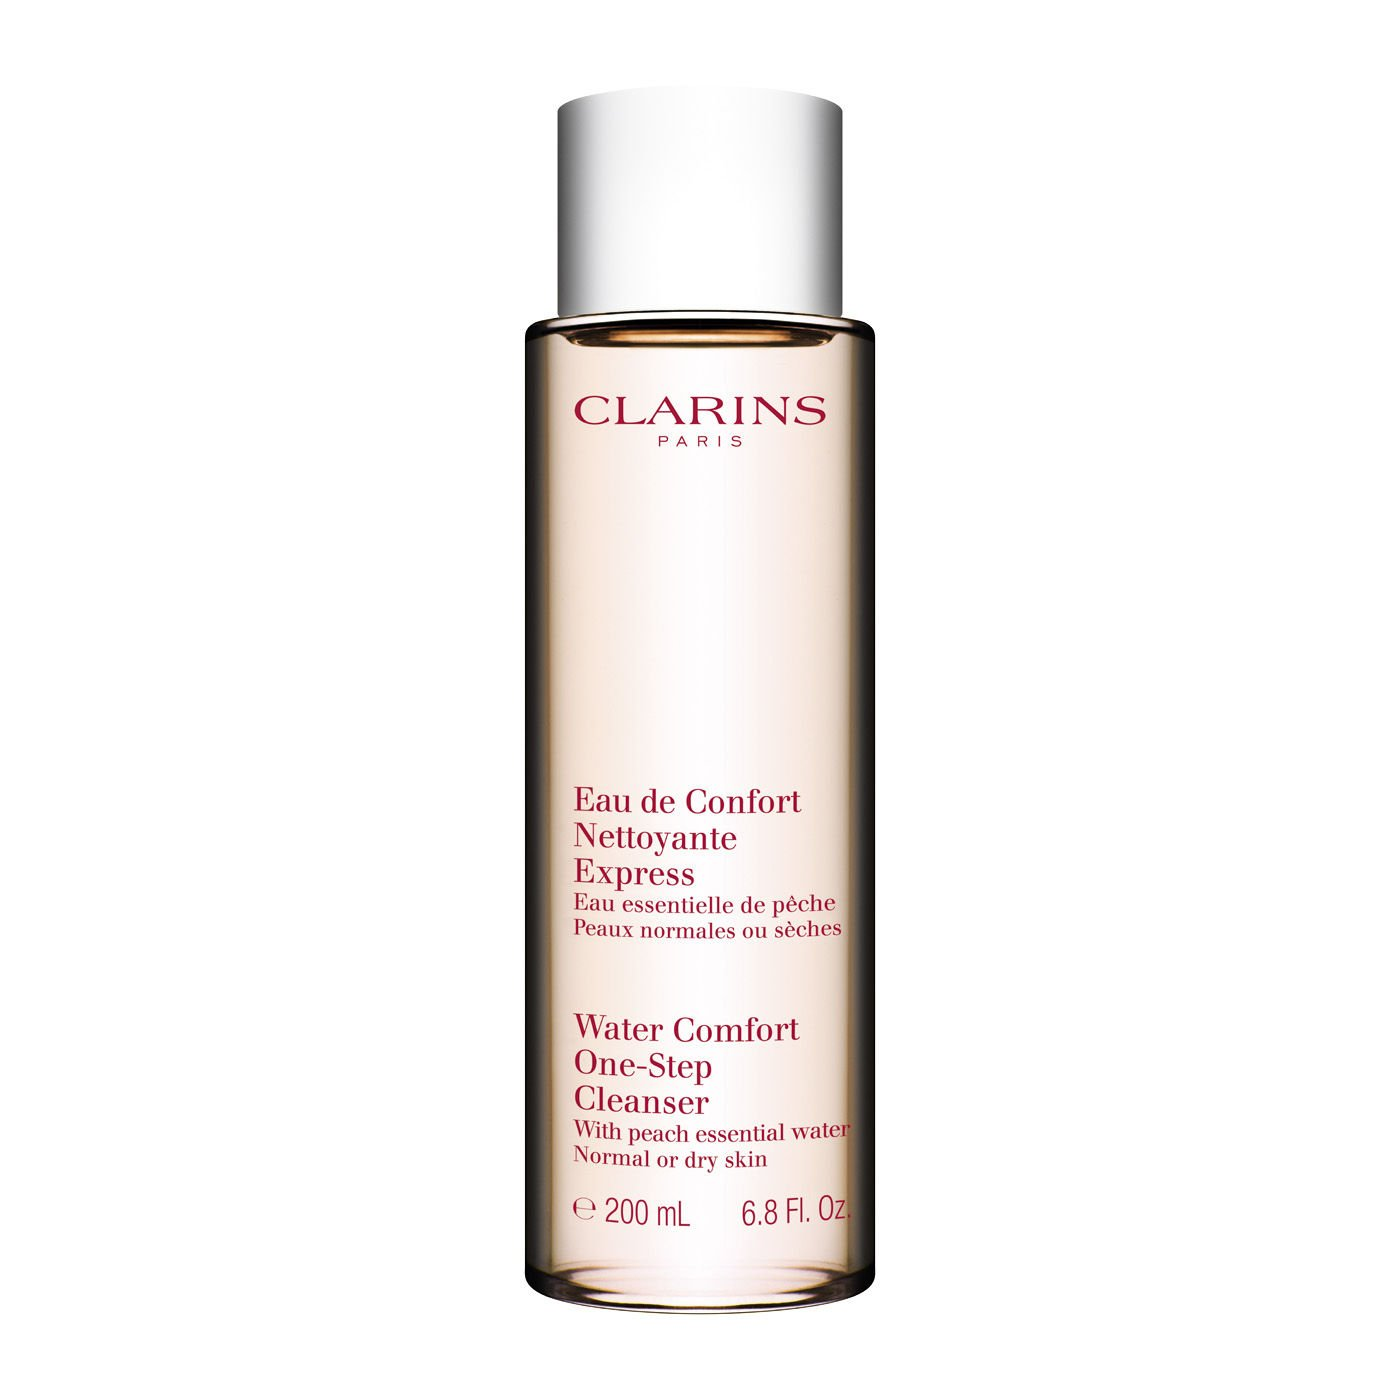 Clarins Water Comfort One-Step Cleanser with Peach Essential Water Water-Fresh Cleansing size: 6.7 fl oz,